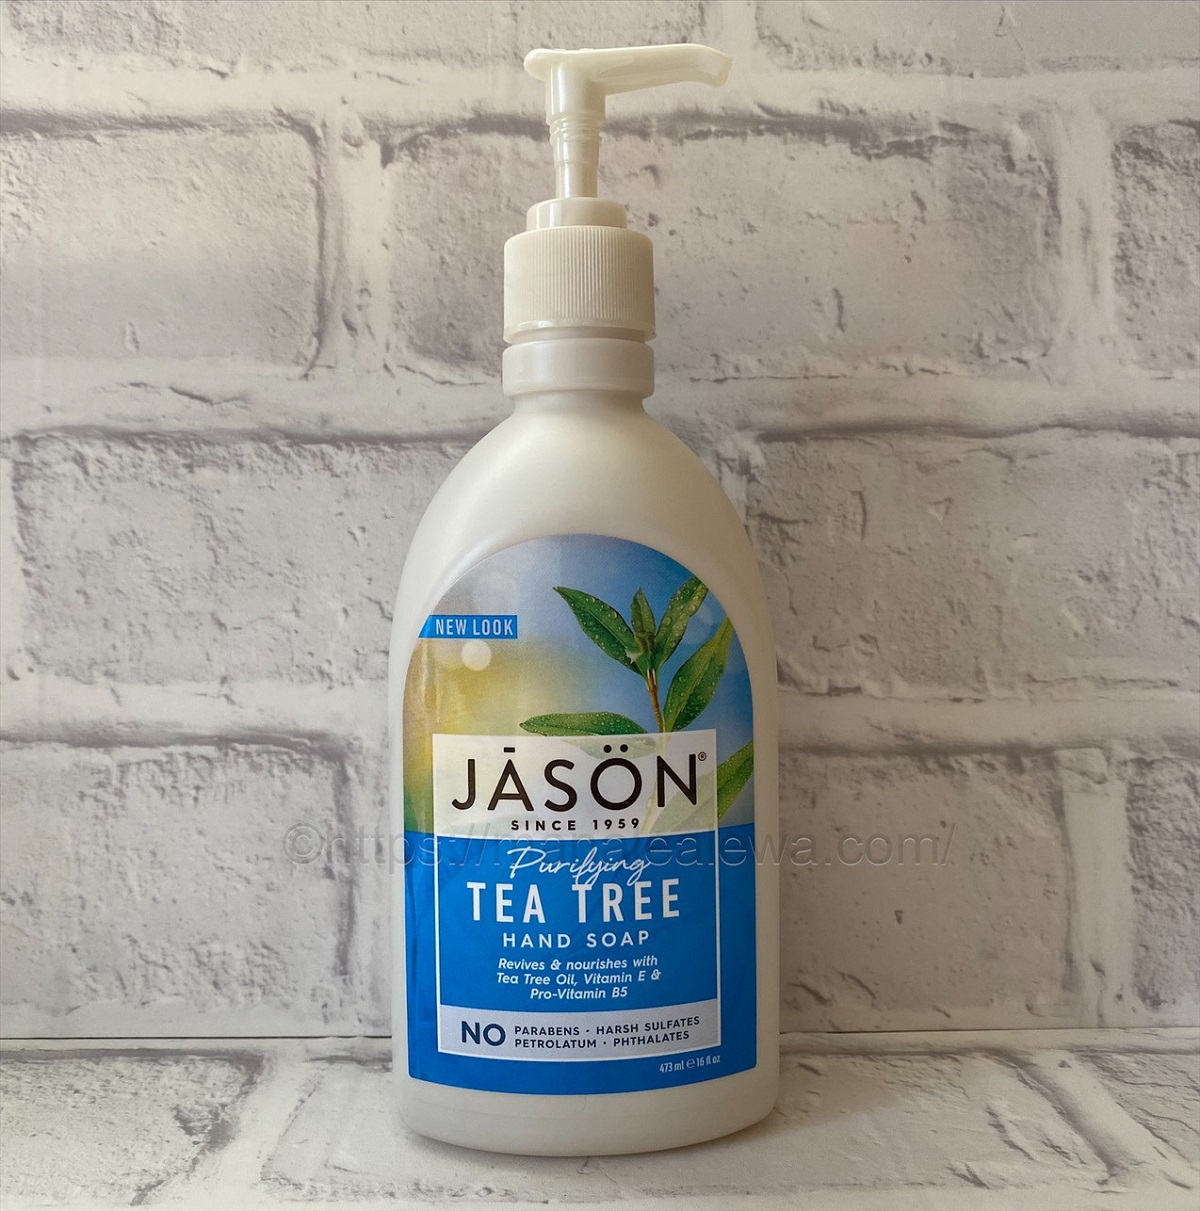 JASON-tea-tree-hand-soap